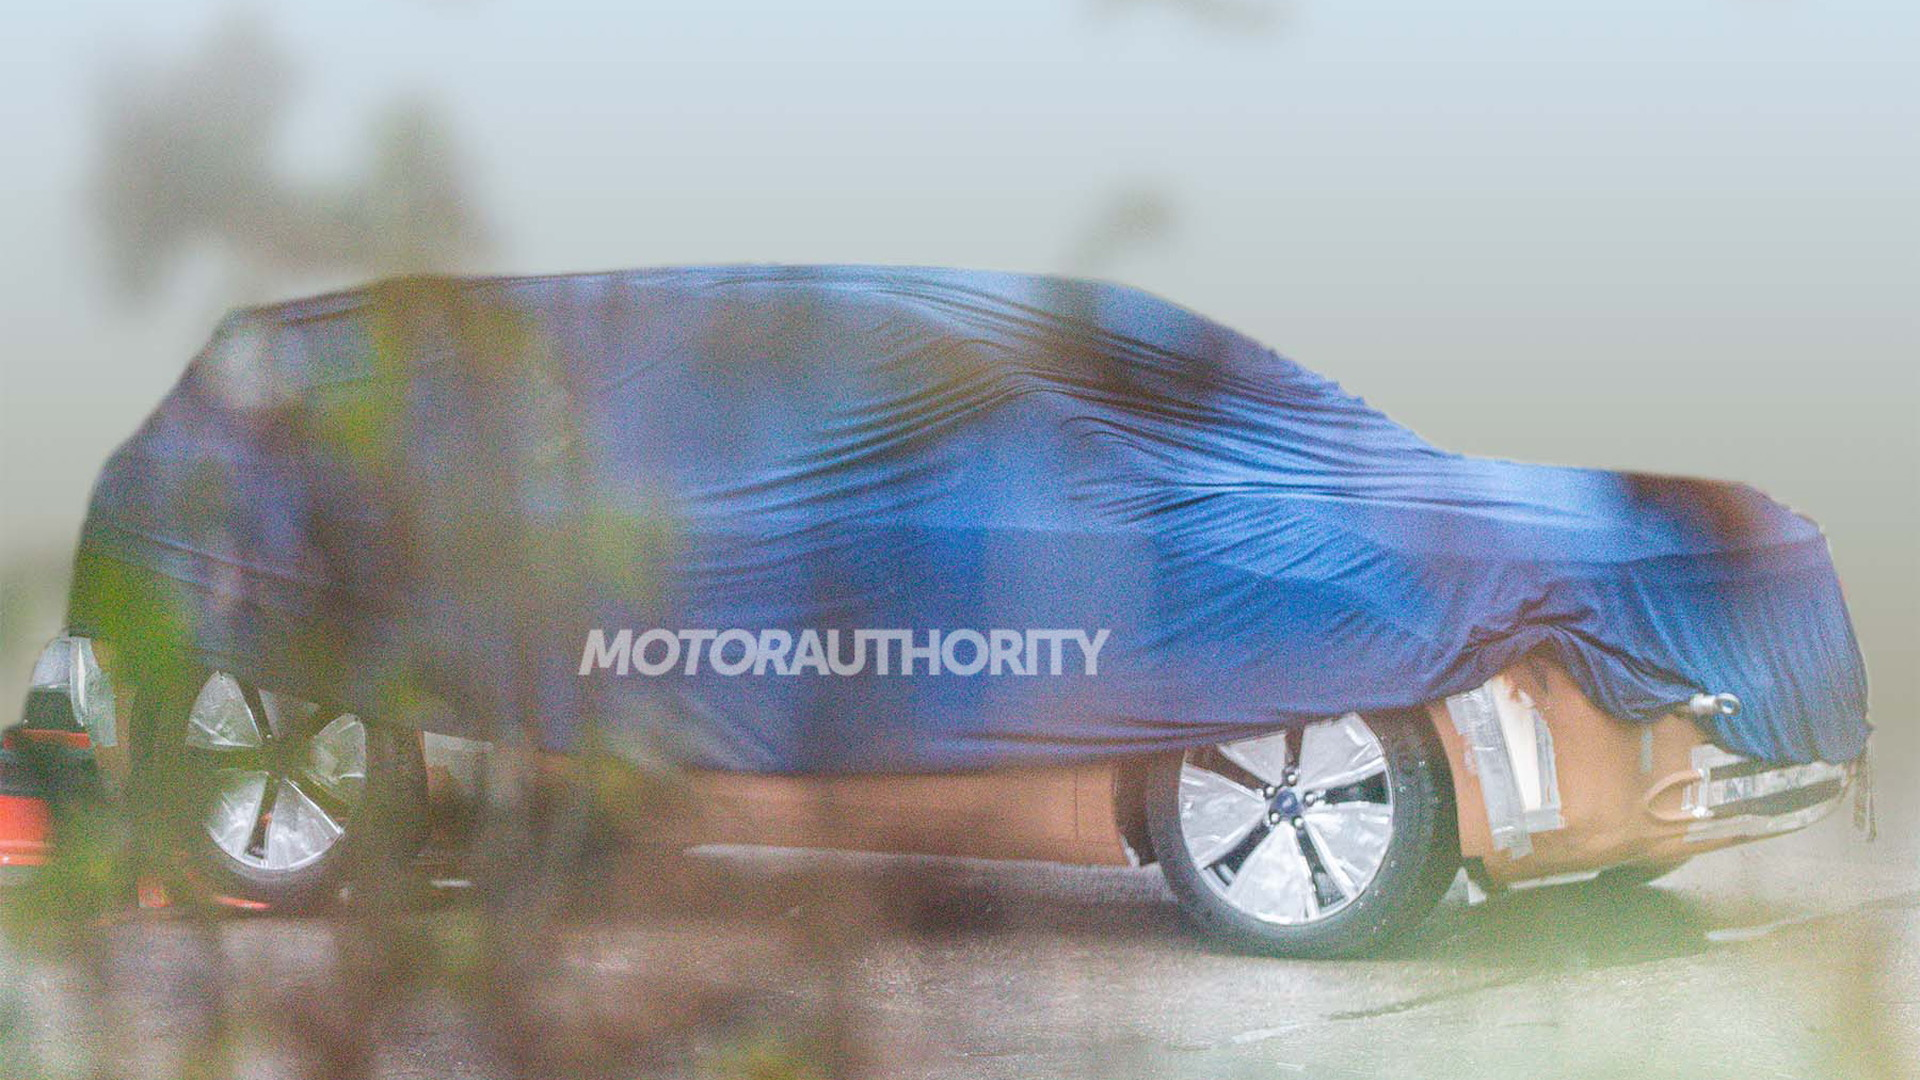 2023 Ford MEB-based electric crossover spy shots - Photo credit: S. Baldauf/SB-Medien